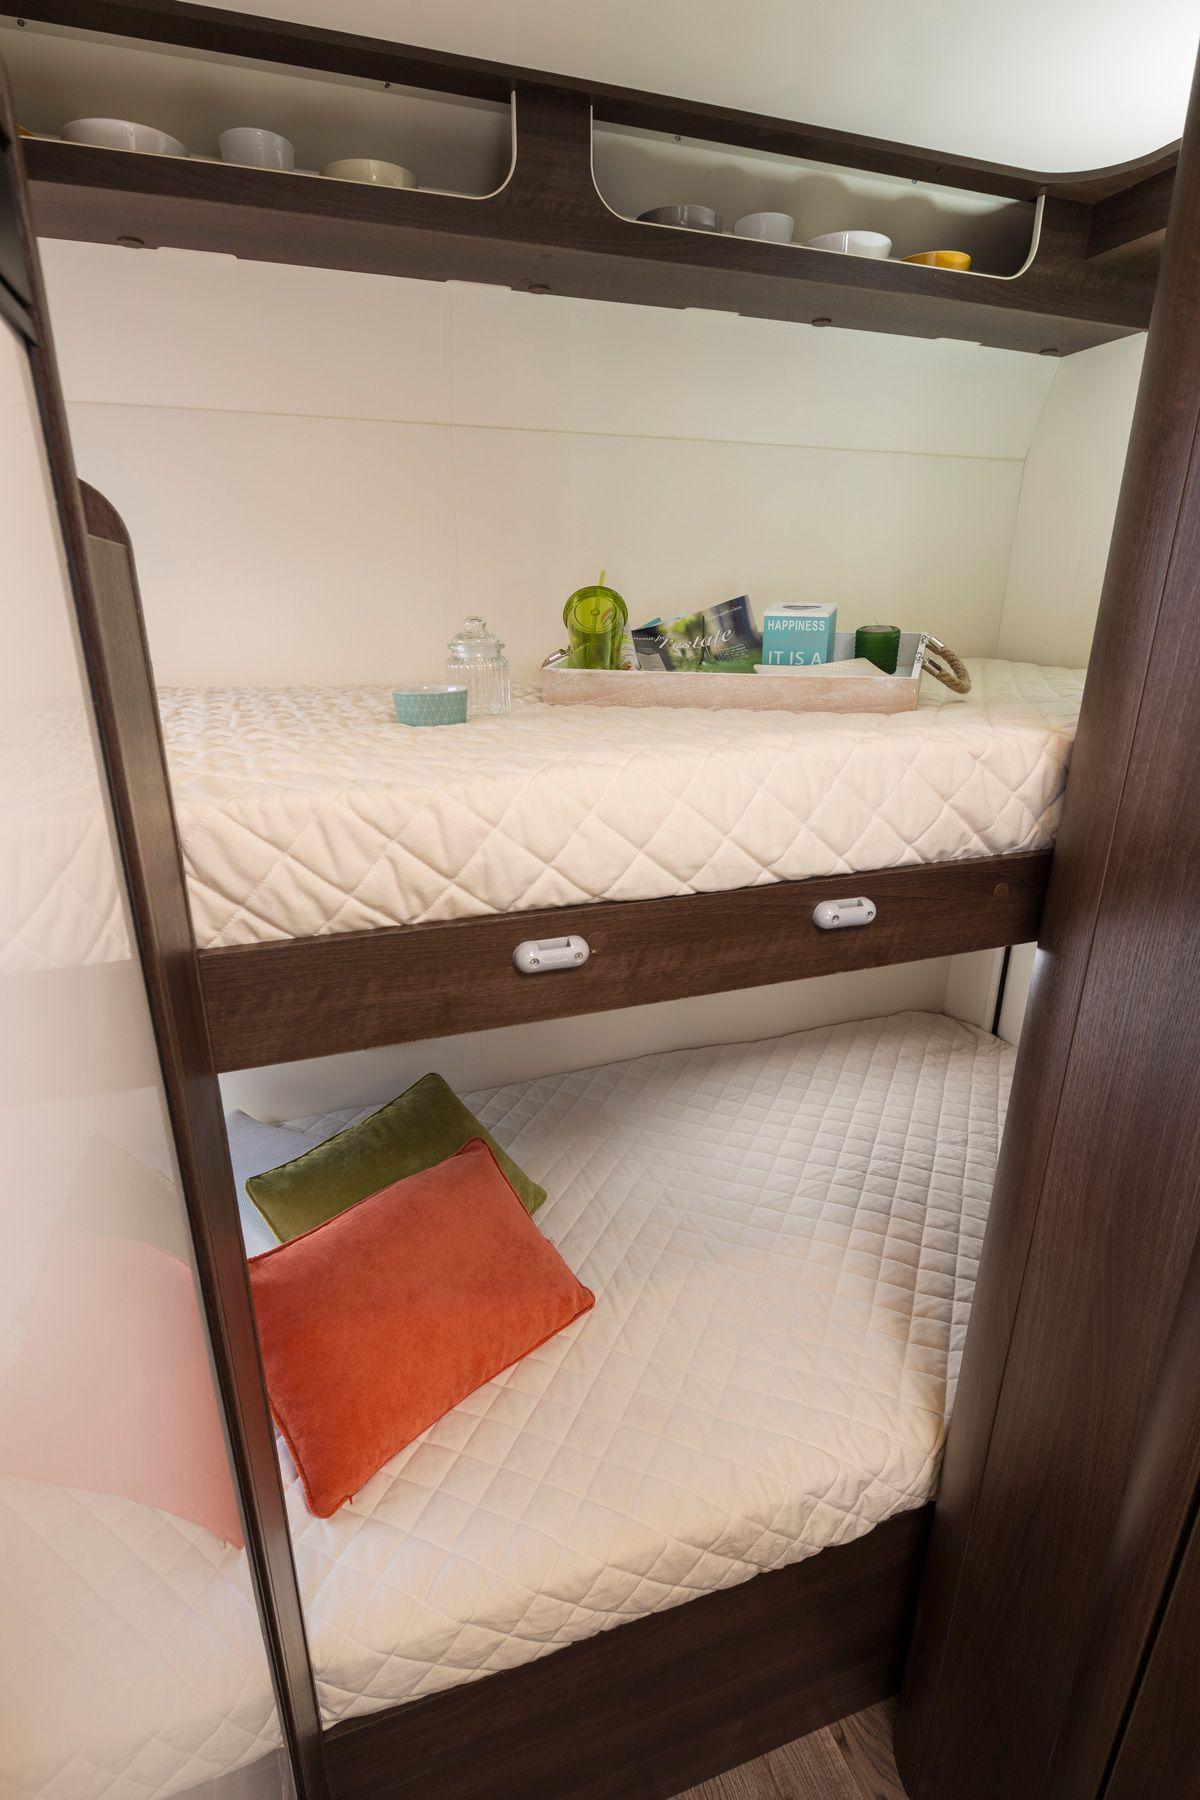 Luxury motorhome bunk beds. You don't have to compromise